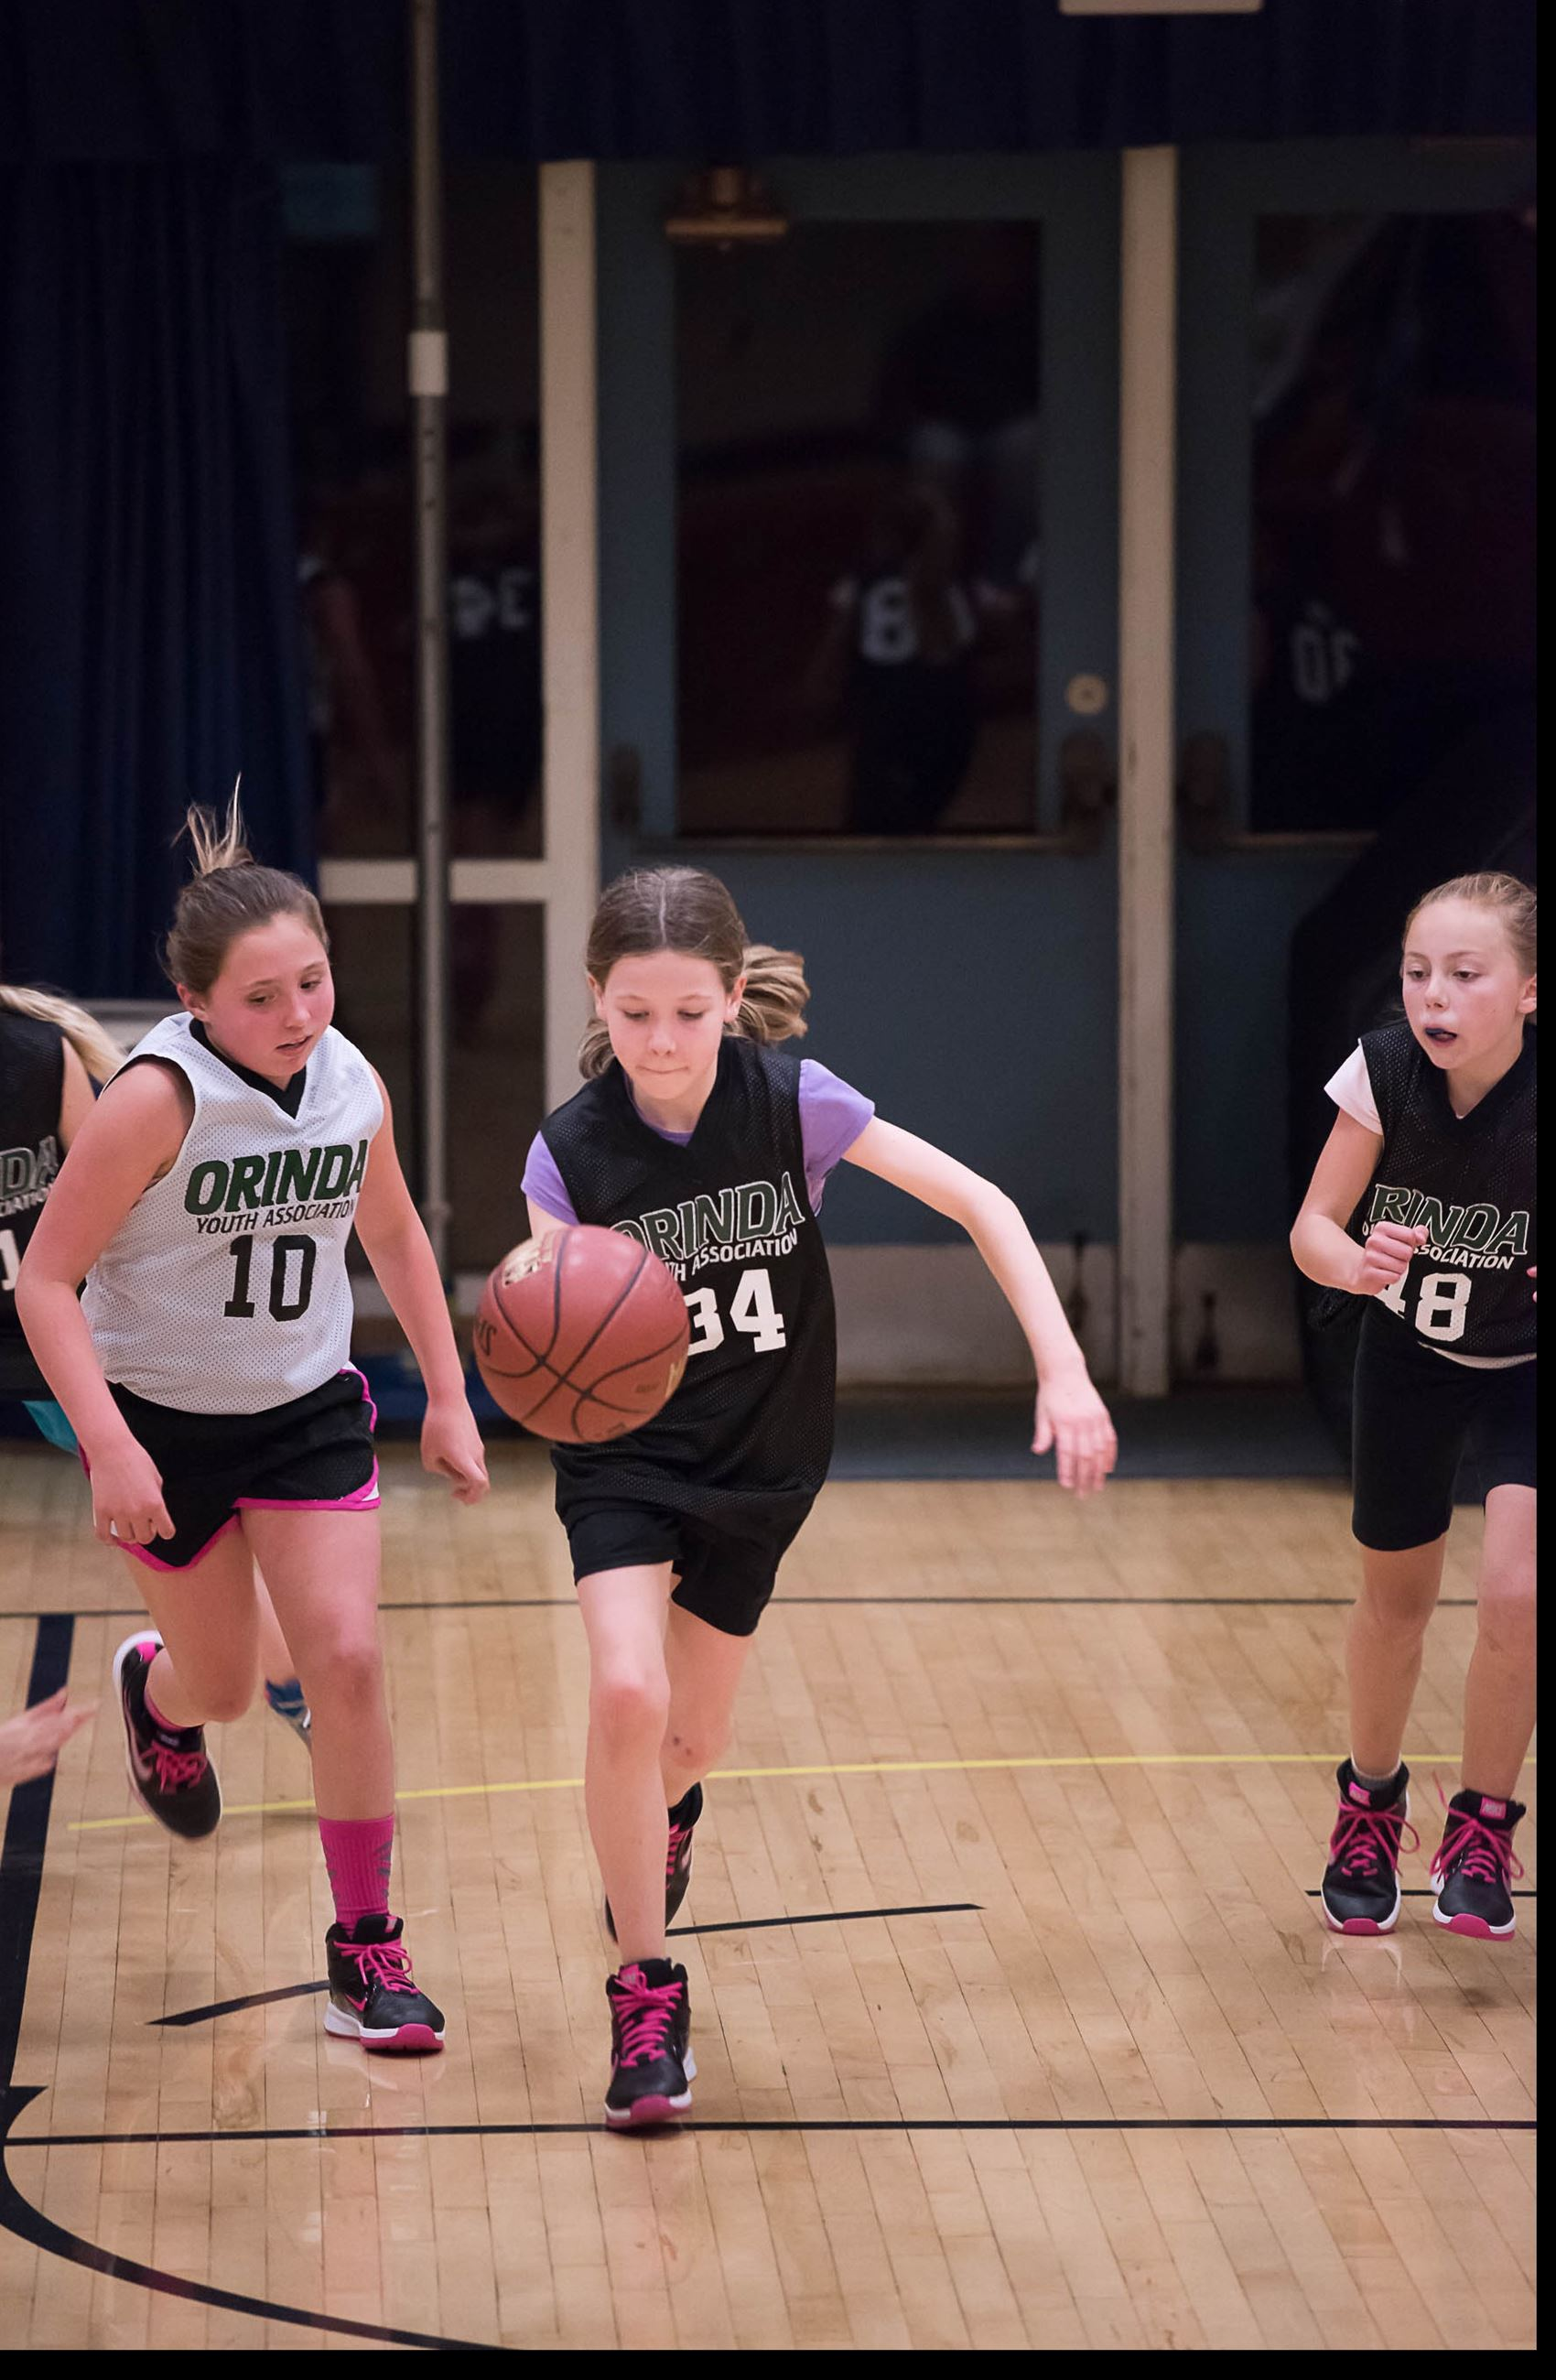 Youth Basketball Sports League